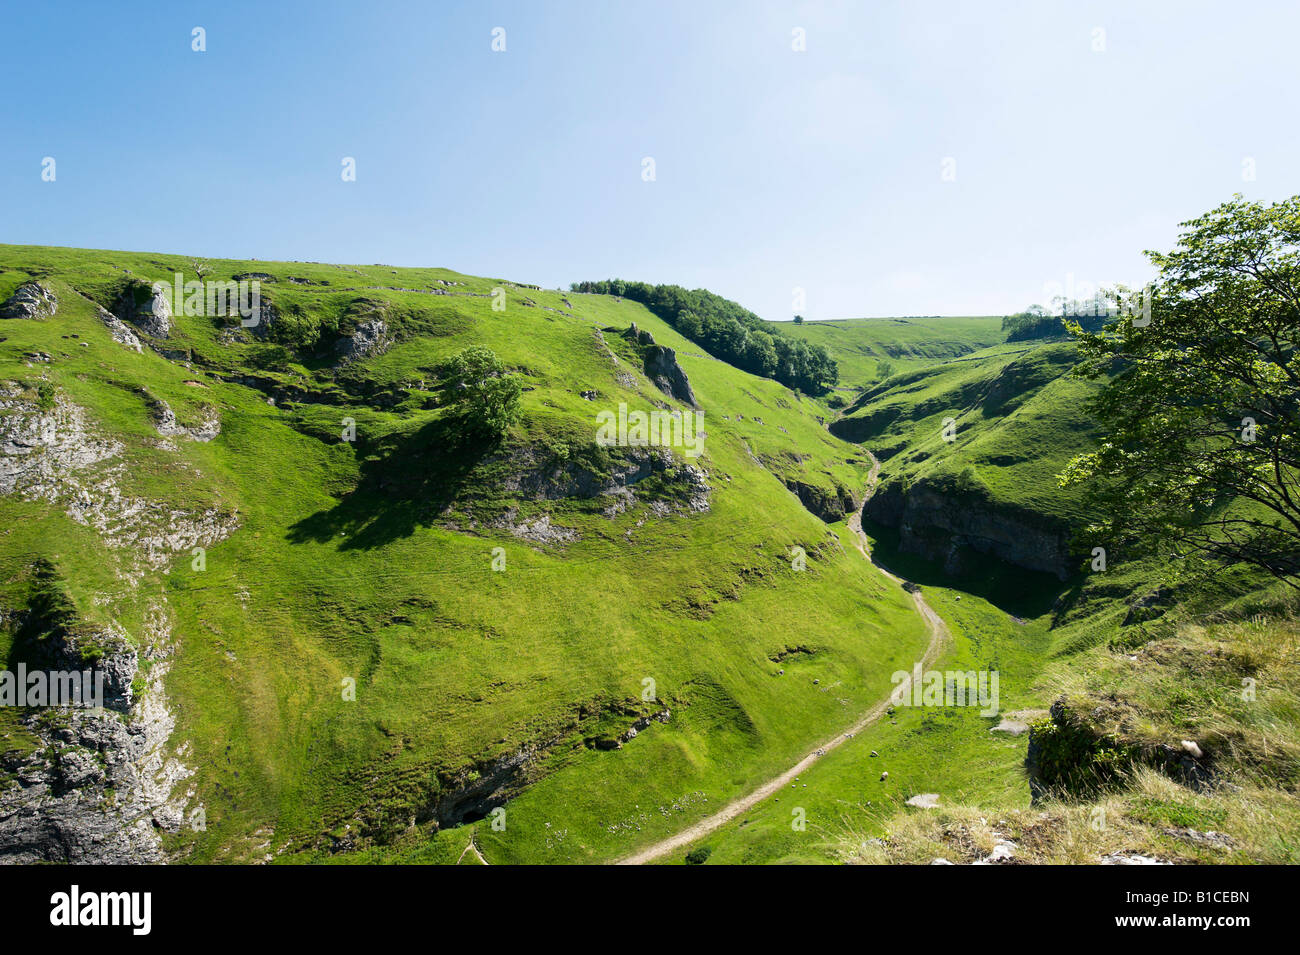 View from the rear salls of Peveril Castle, Castleton, Peak District, Derbyshire, England, United Kingdom - Stock Image